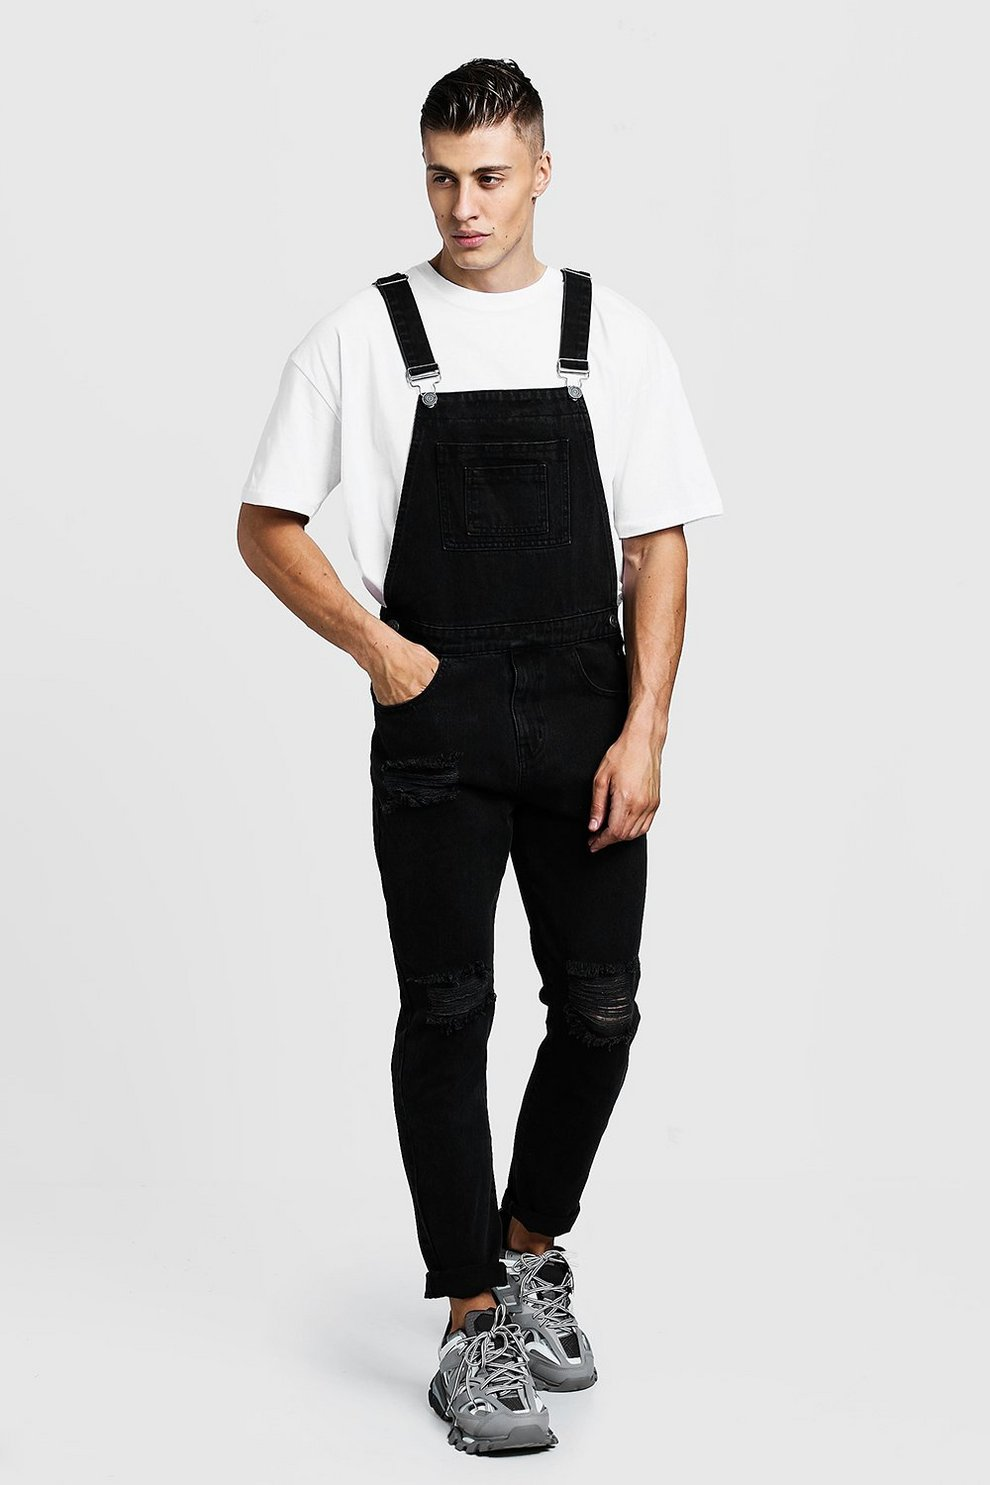 aliexpress thoughts on popular style Slim Fit Distressed Denim Overalls | Boohoo